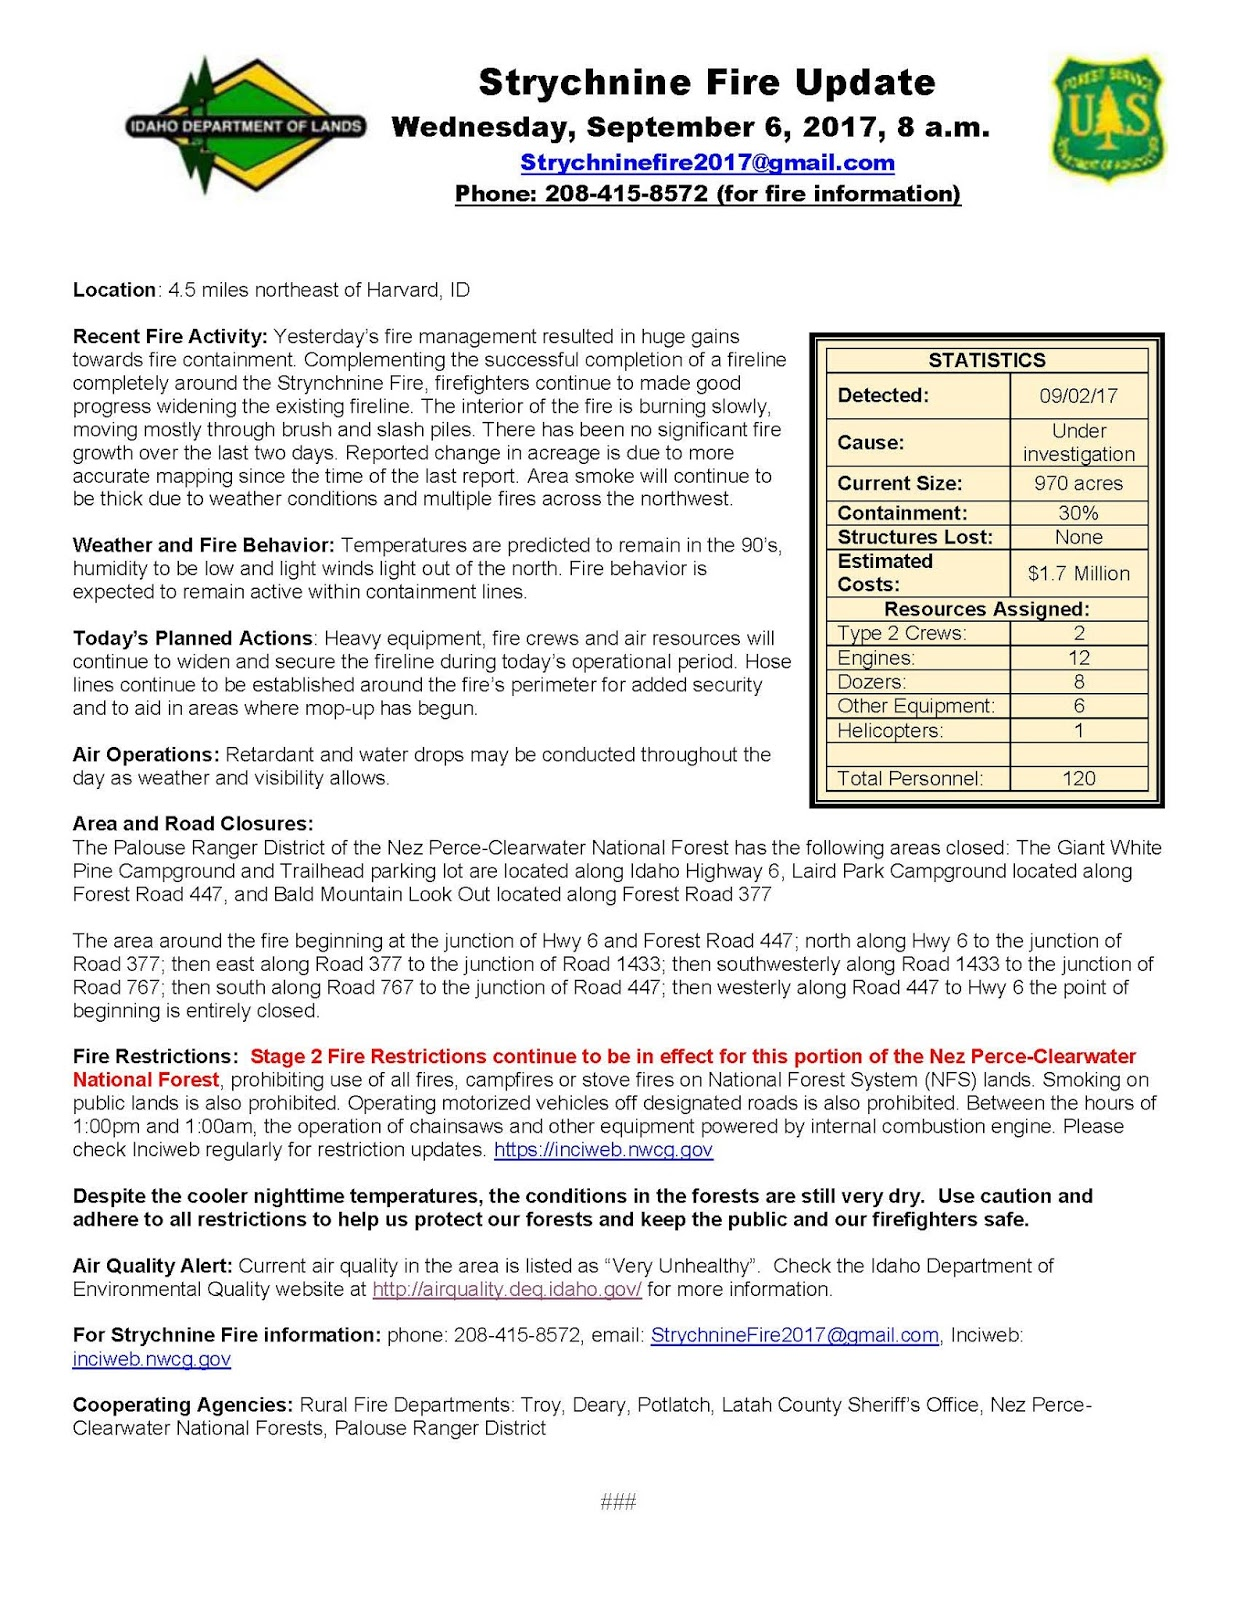 Strychnine Fire Update And Map Sept 6